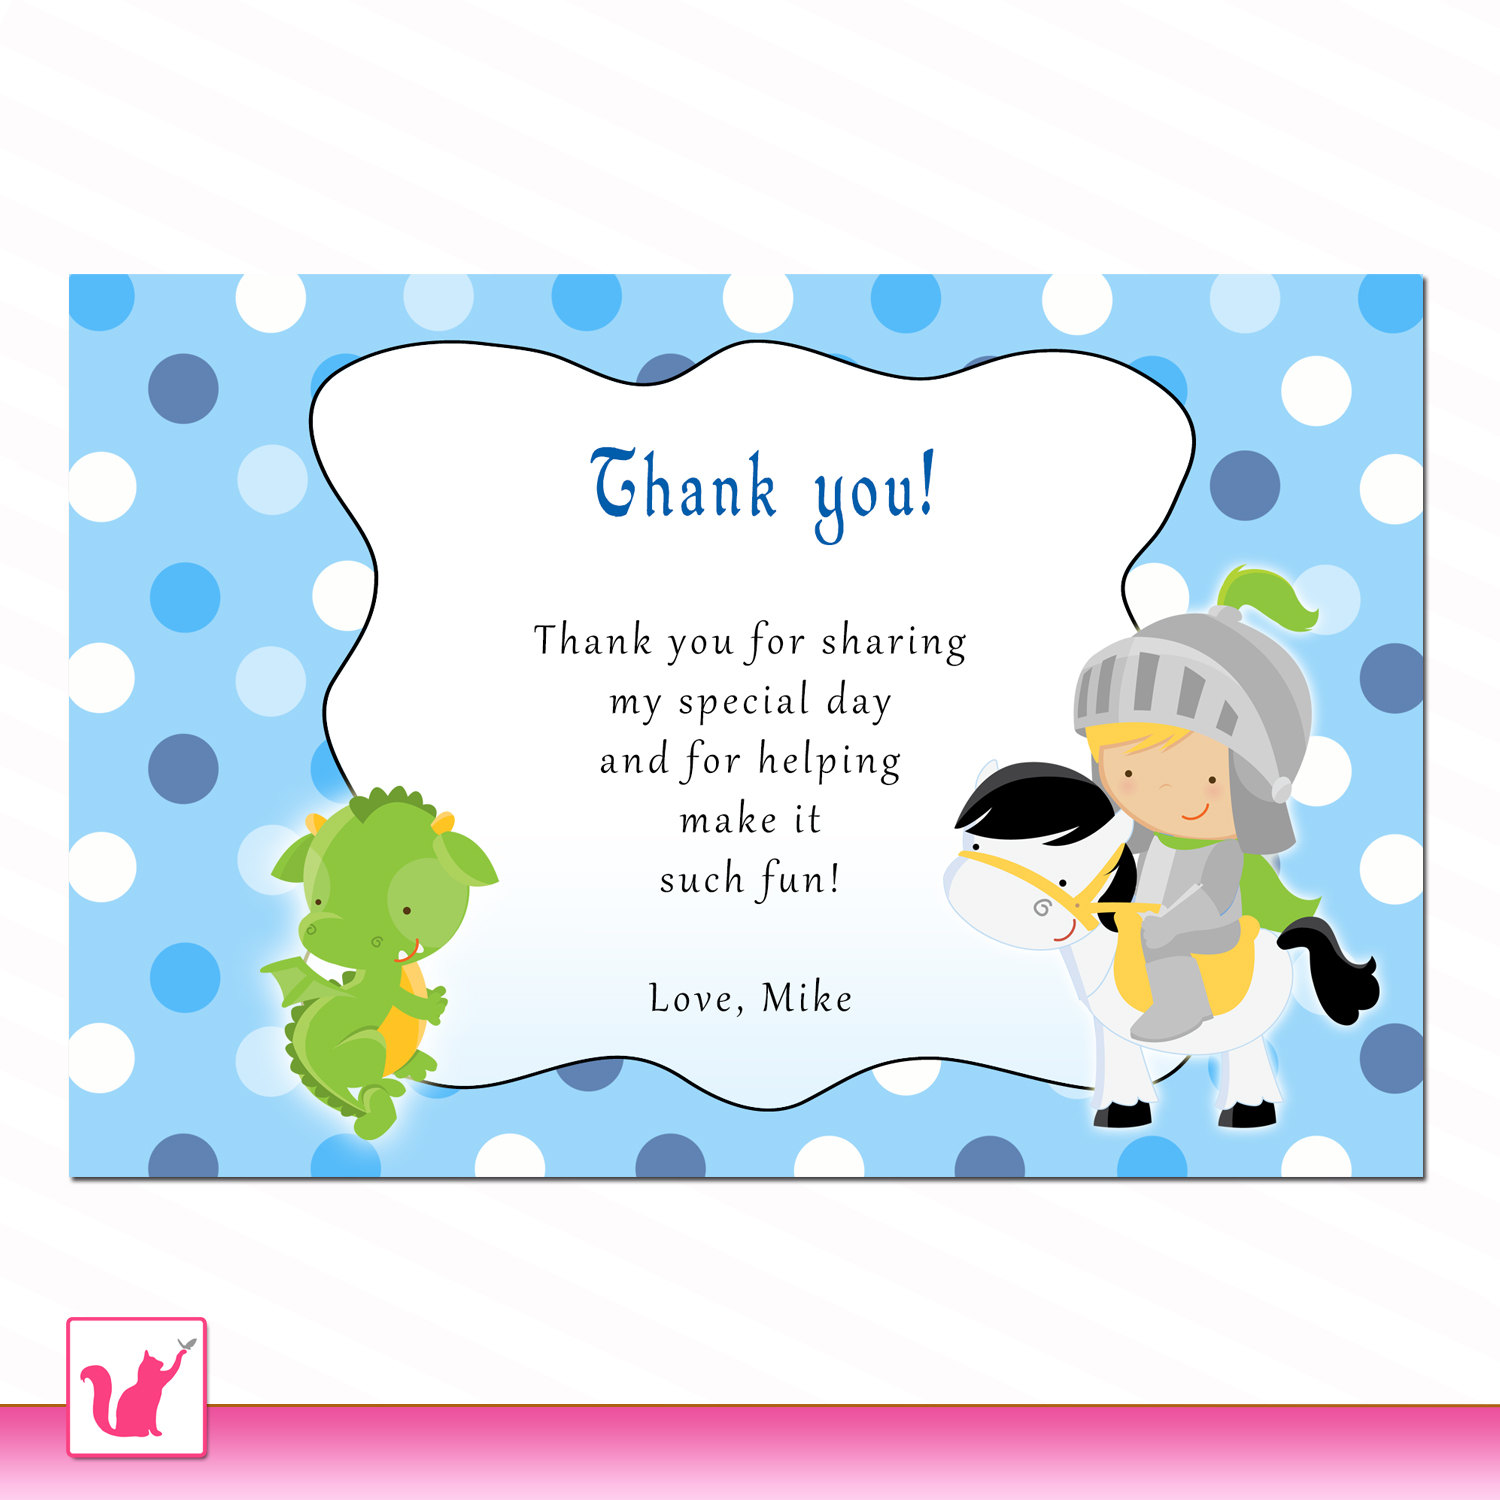 birthday thank you card wording samples ; fairy-tale-kids-photo-thank-you-cards-concept-design-various-legendary-animal-picture-cartoon-astonishing-dragon